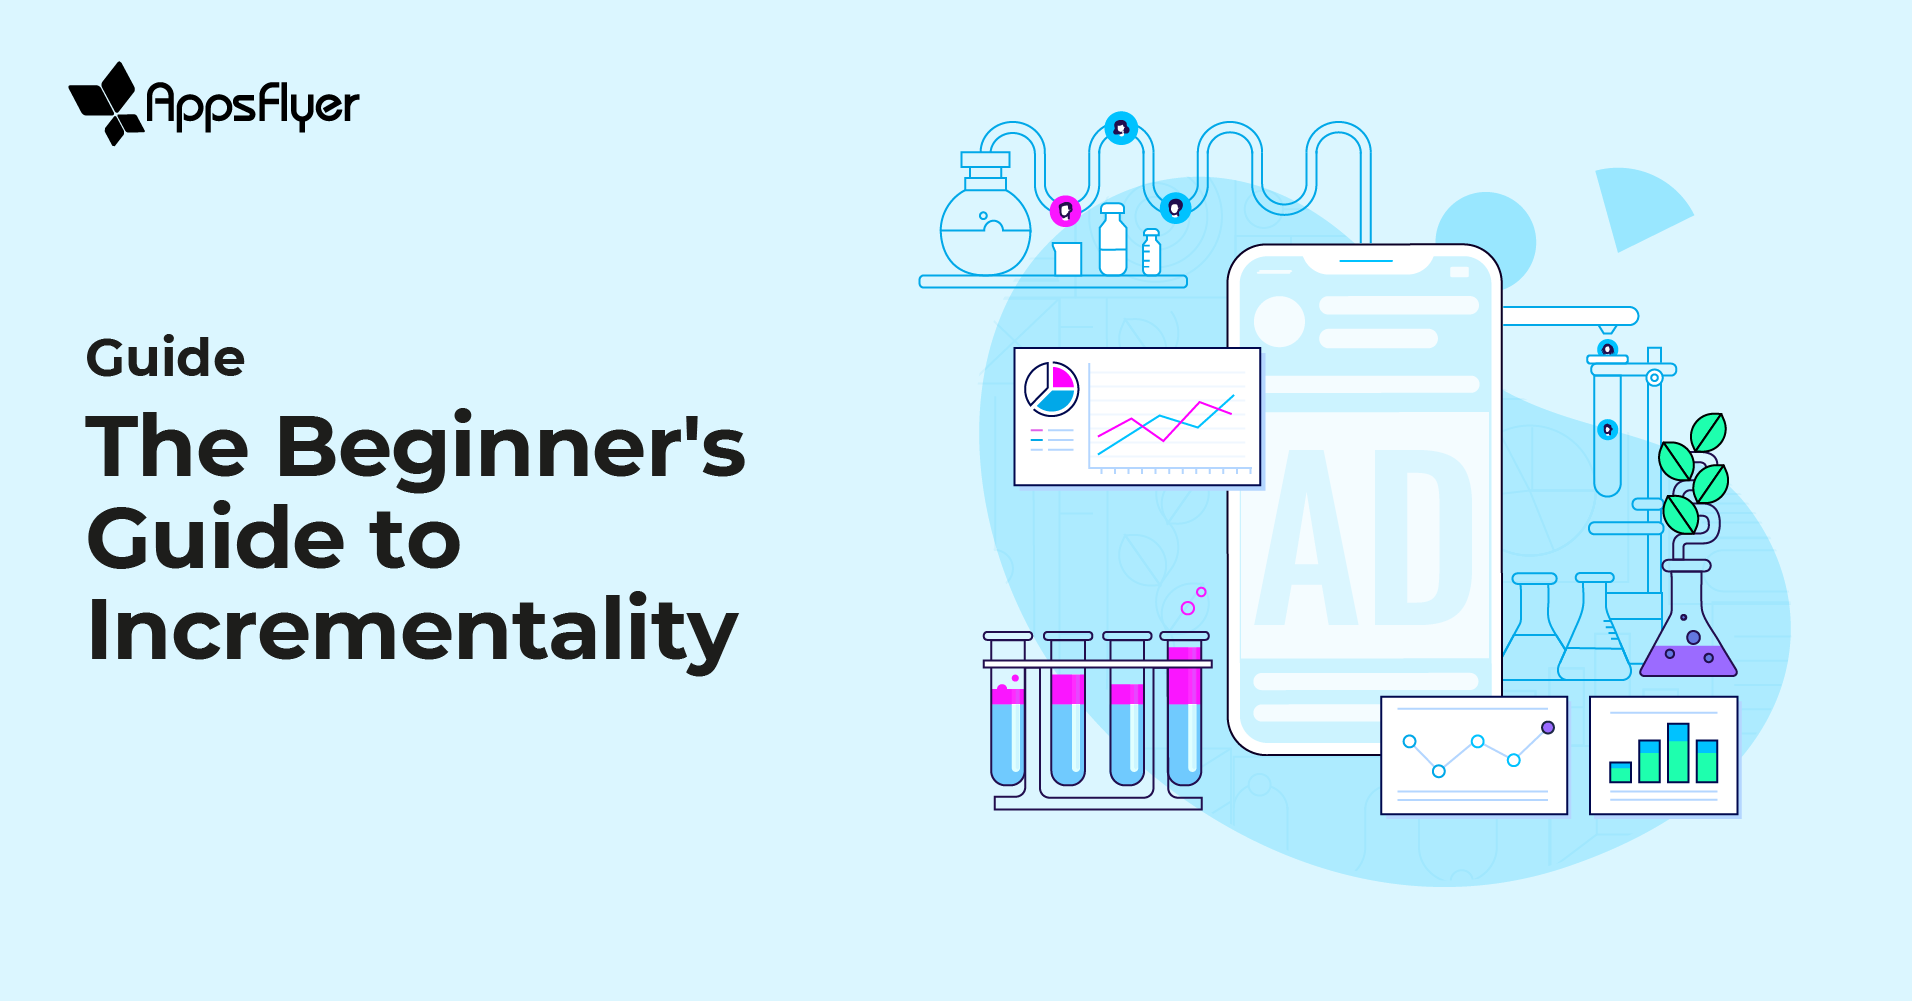 The Beginner's Guide to Incrementality for Remarketing